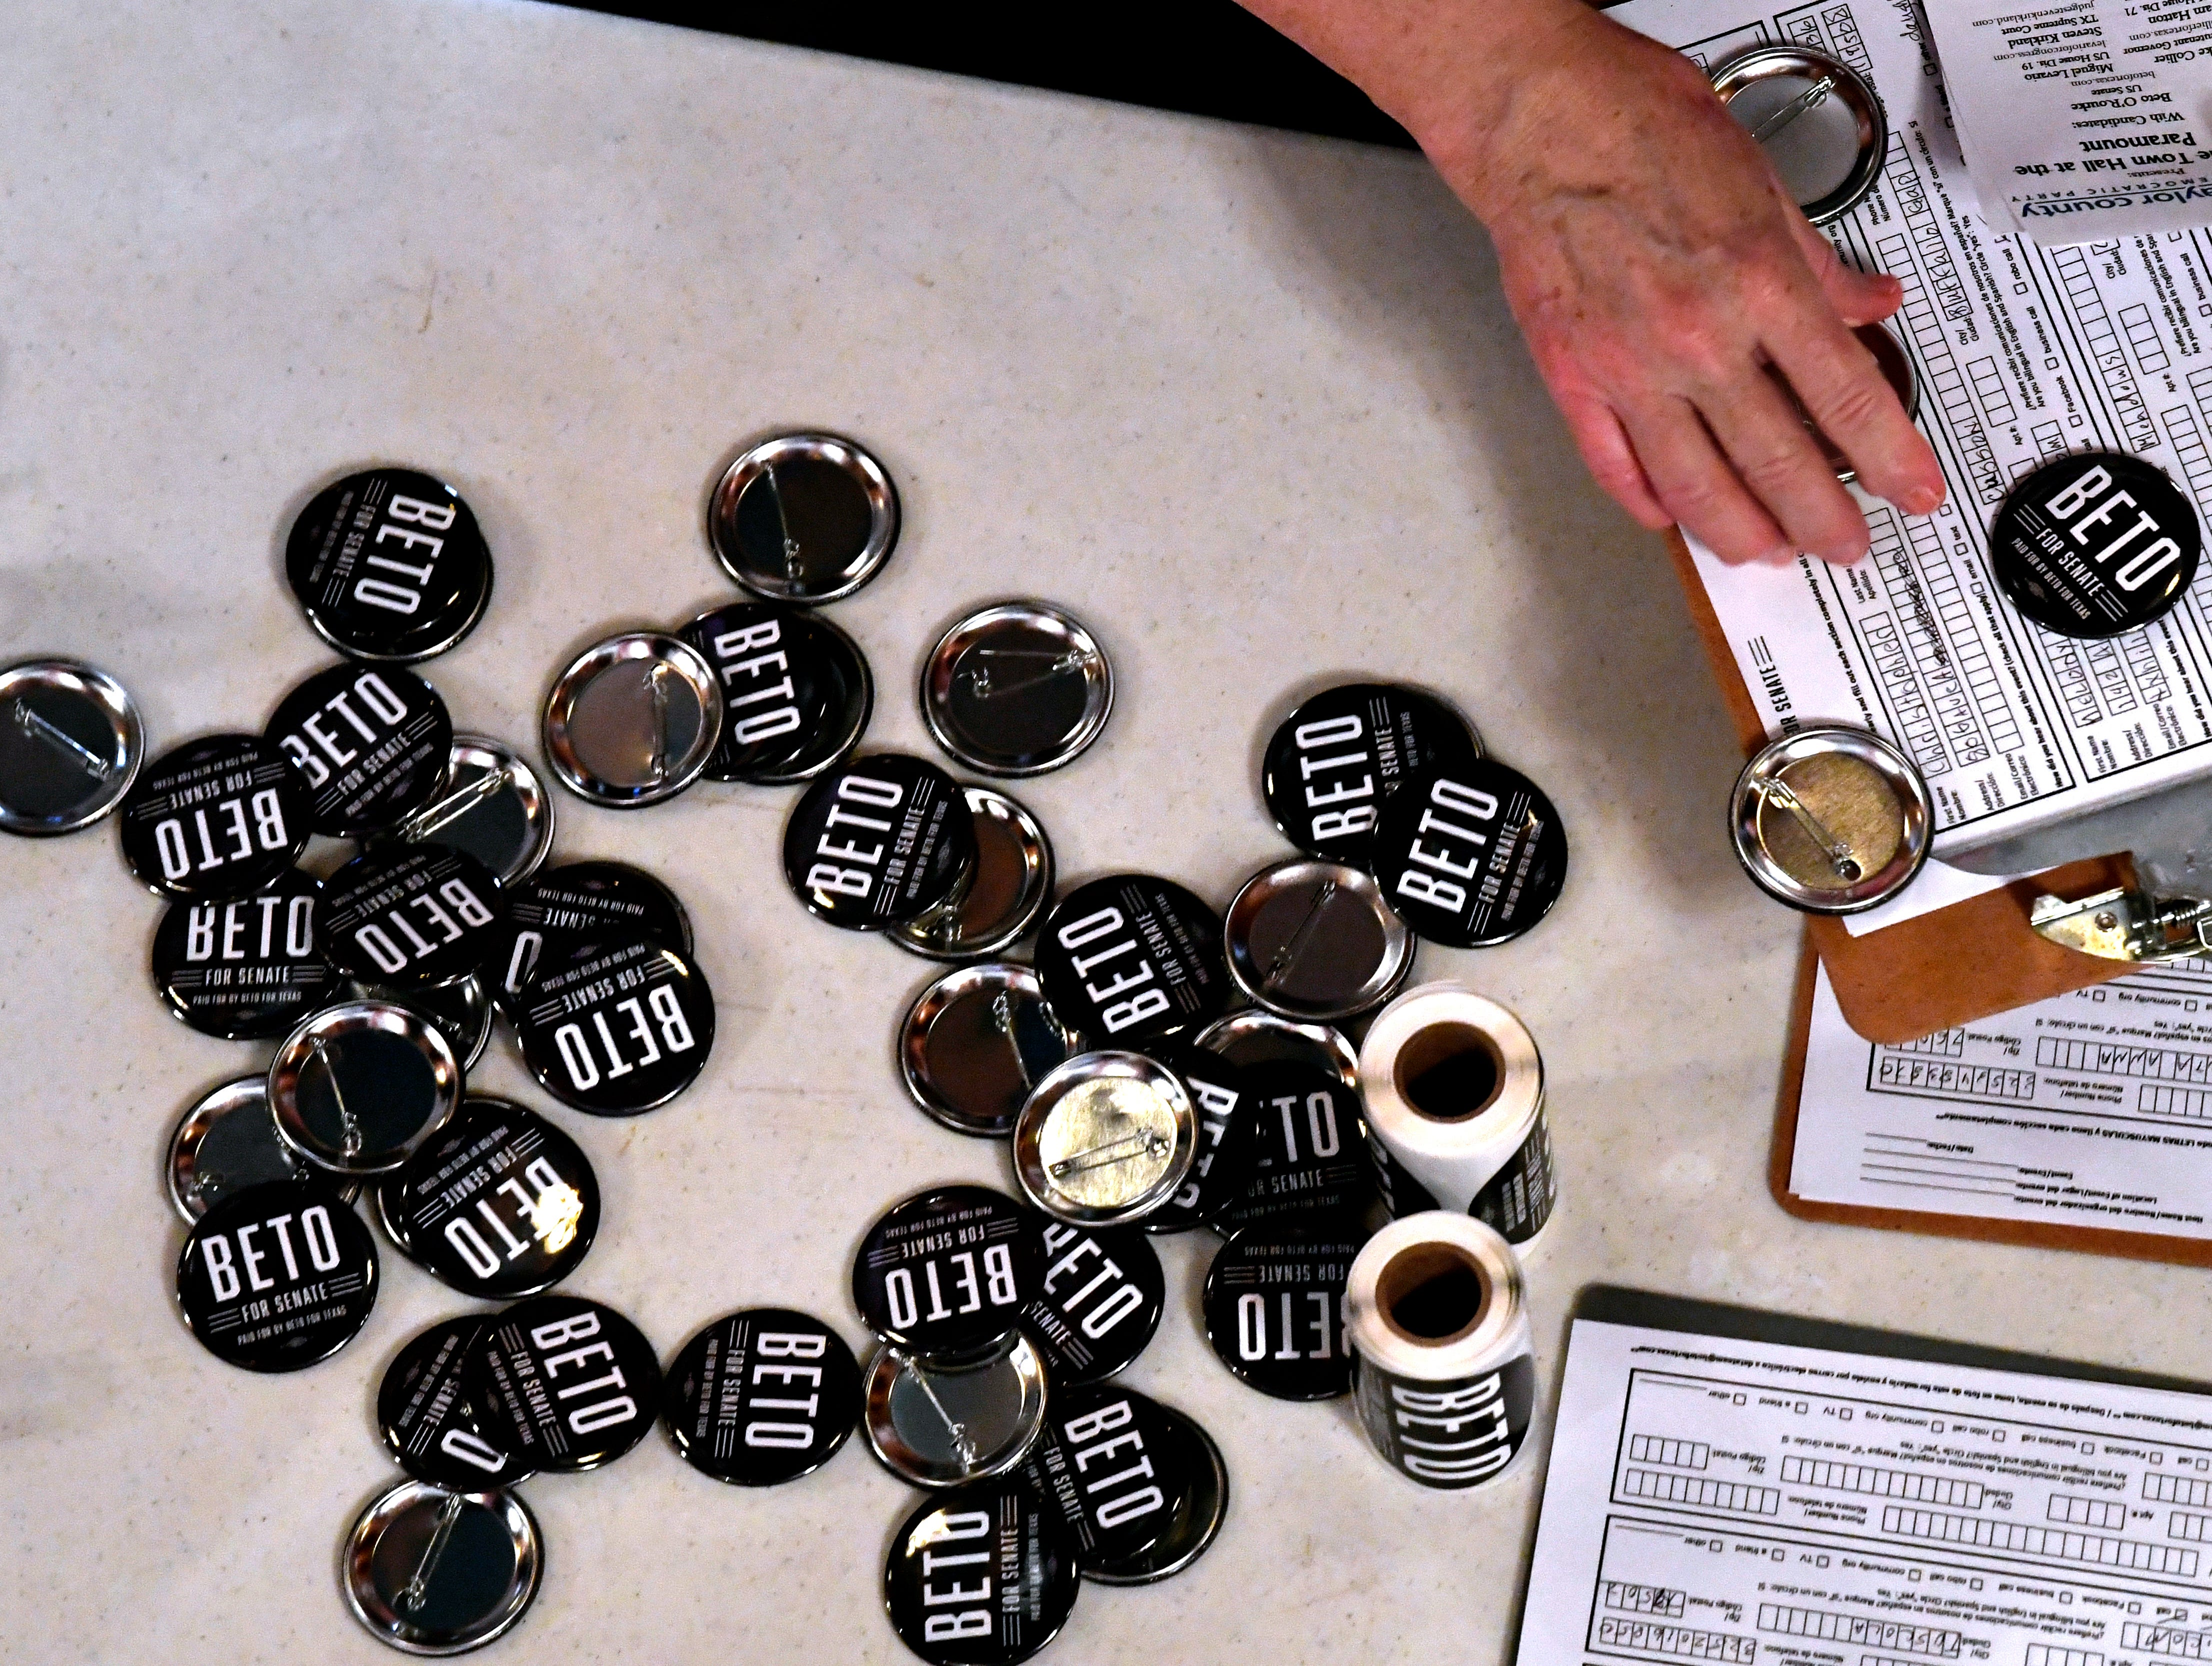 Beto O'Rourke campaign buttons sit in a dwindling pile on a table in the lobby of the Paramount Theatre Thursday August. 2, 2018. Five Democratic candidates spoke to a crowd of nearly 800 people during a town hall meeting which included U.S. Senate hopeful Beto O'Rourke.